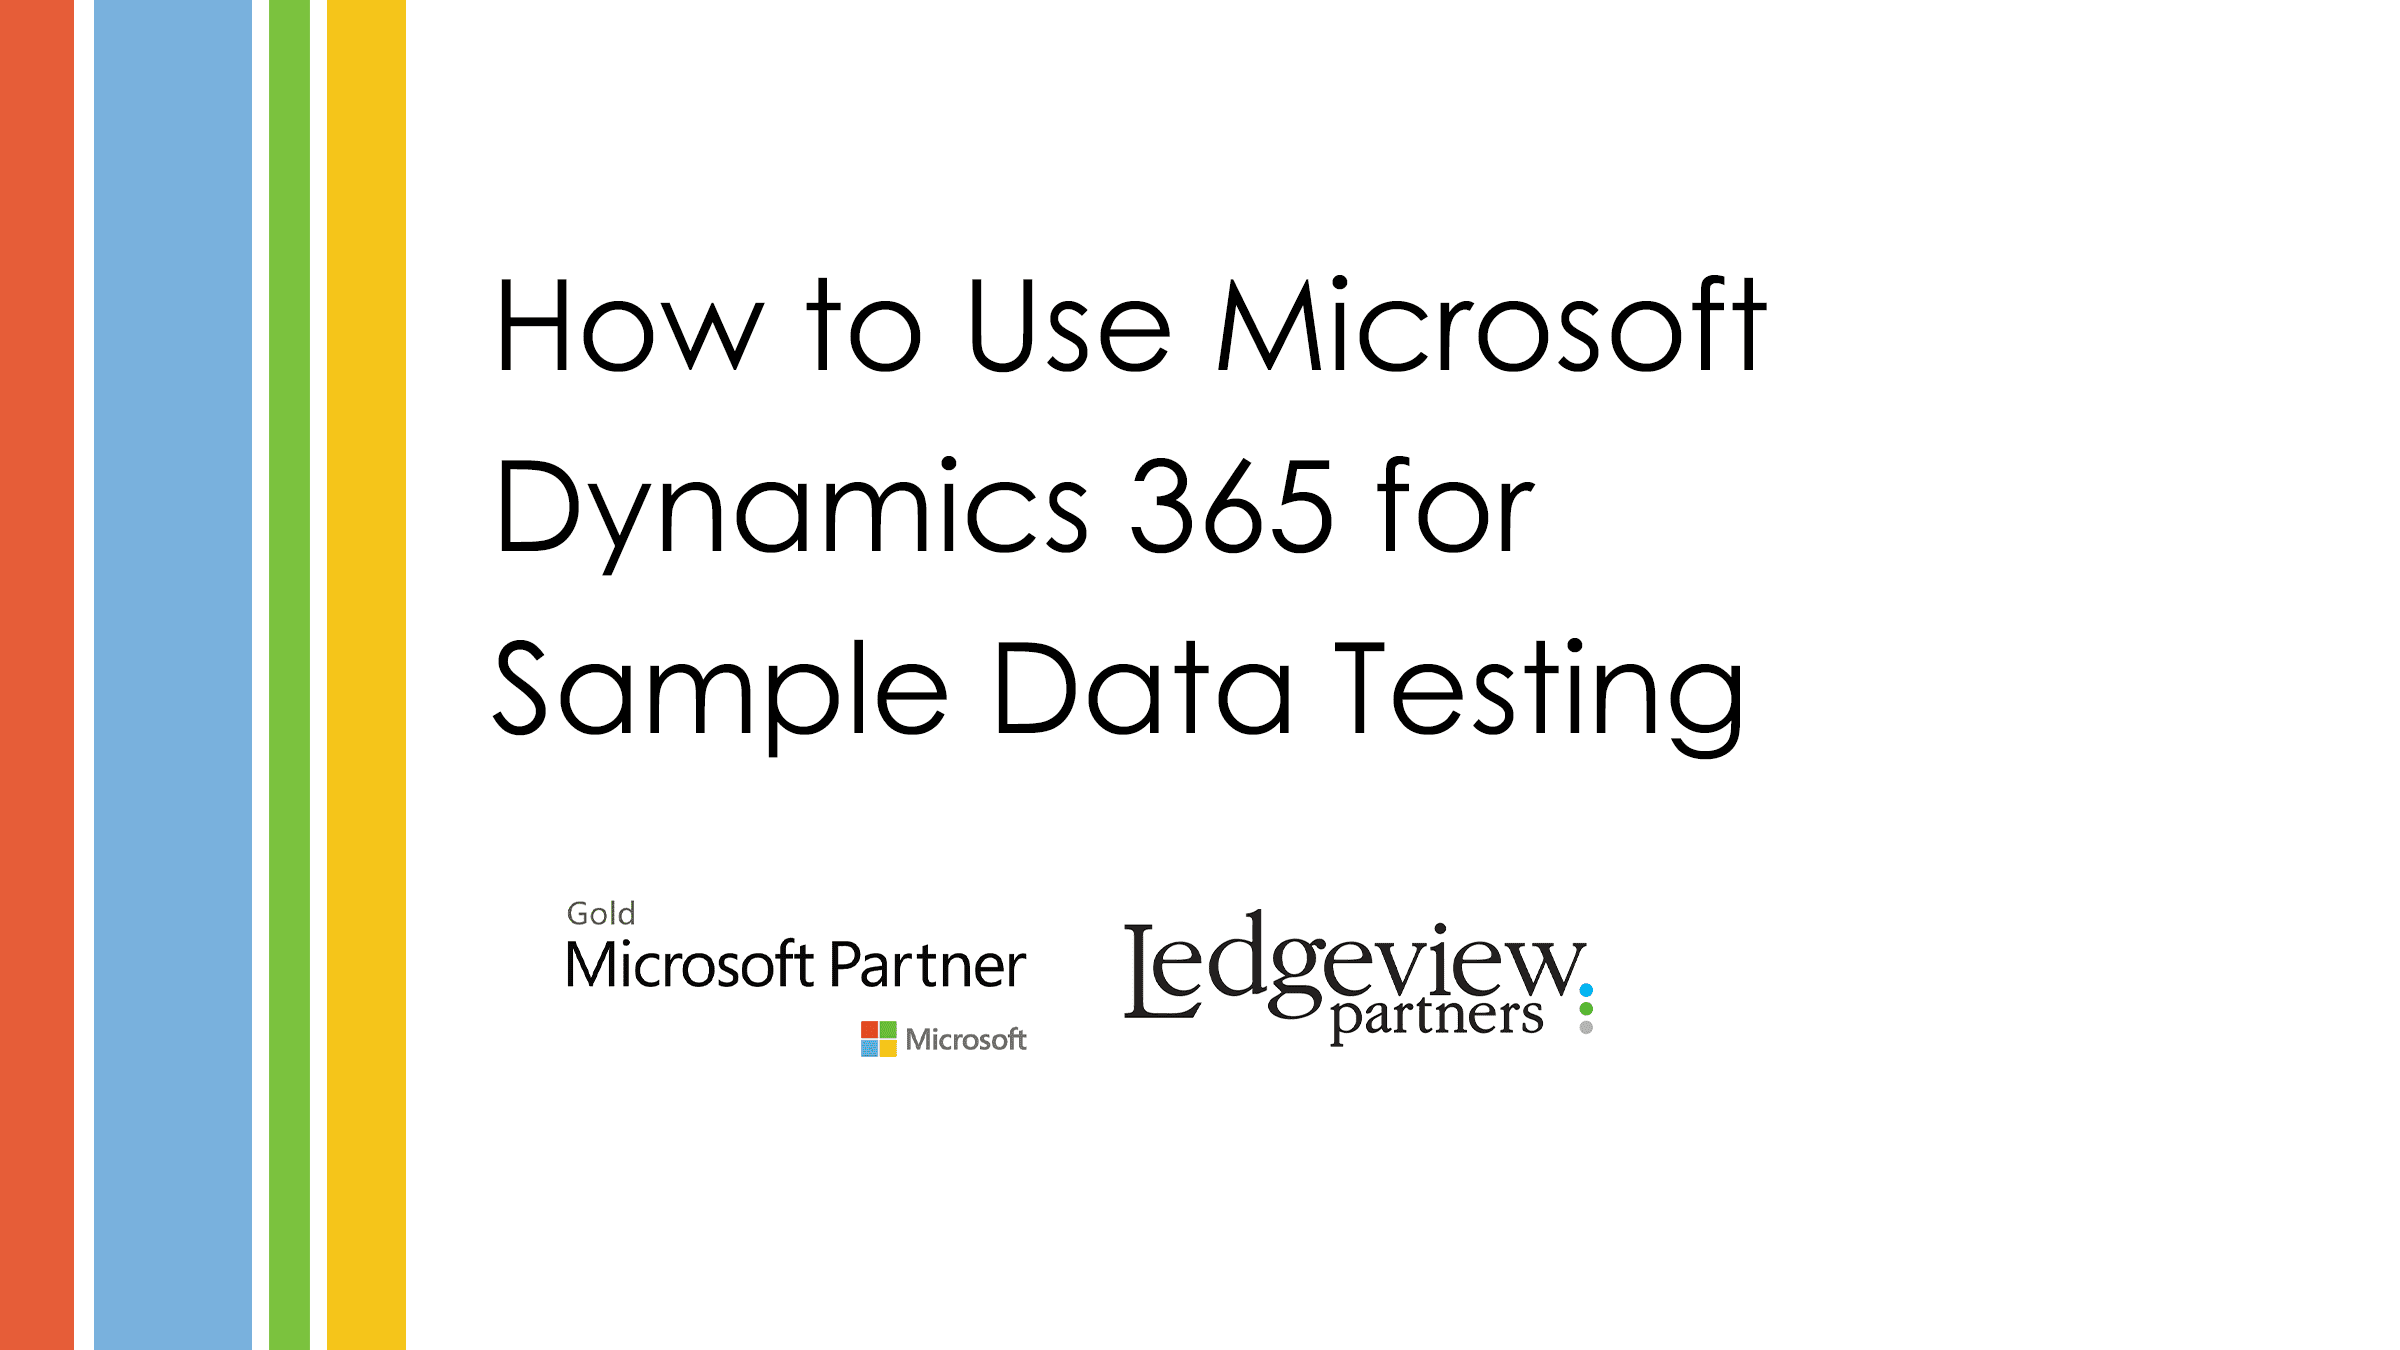 How to Use Microsoft Dynamics 365 for Sample Data Testing